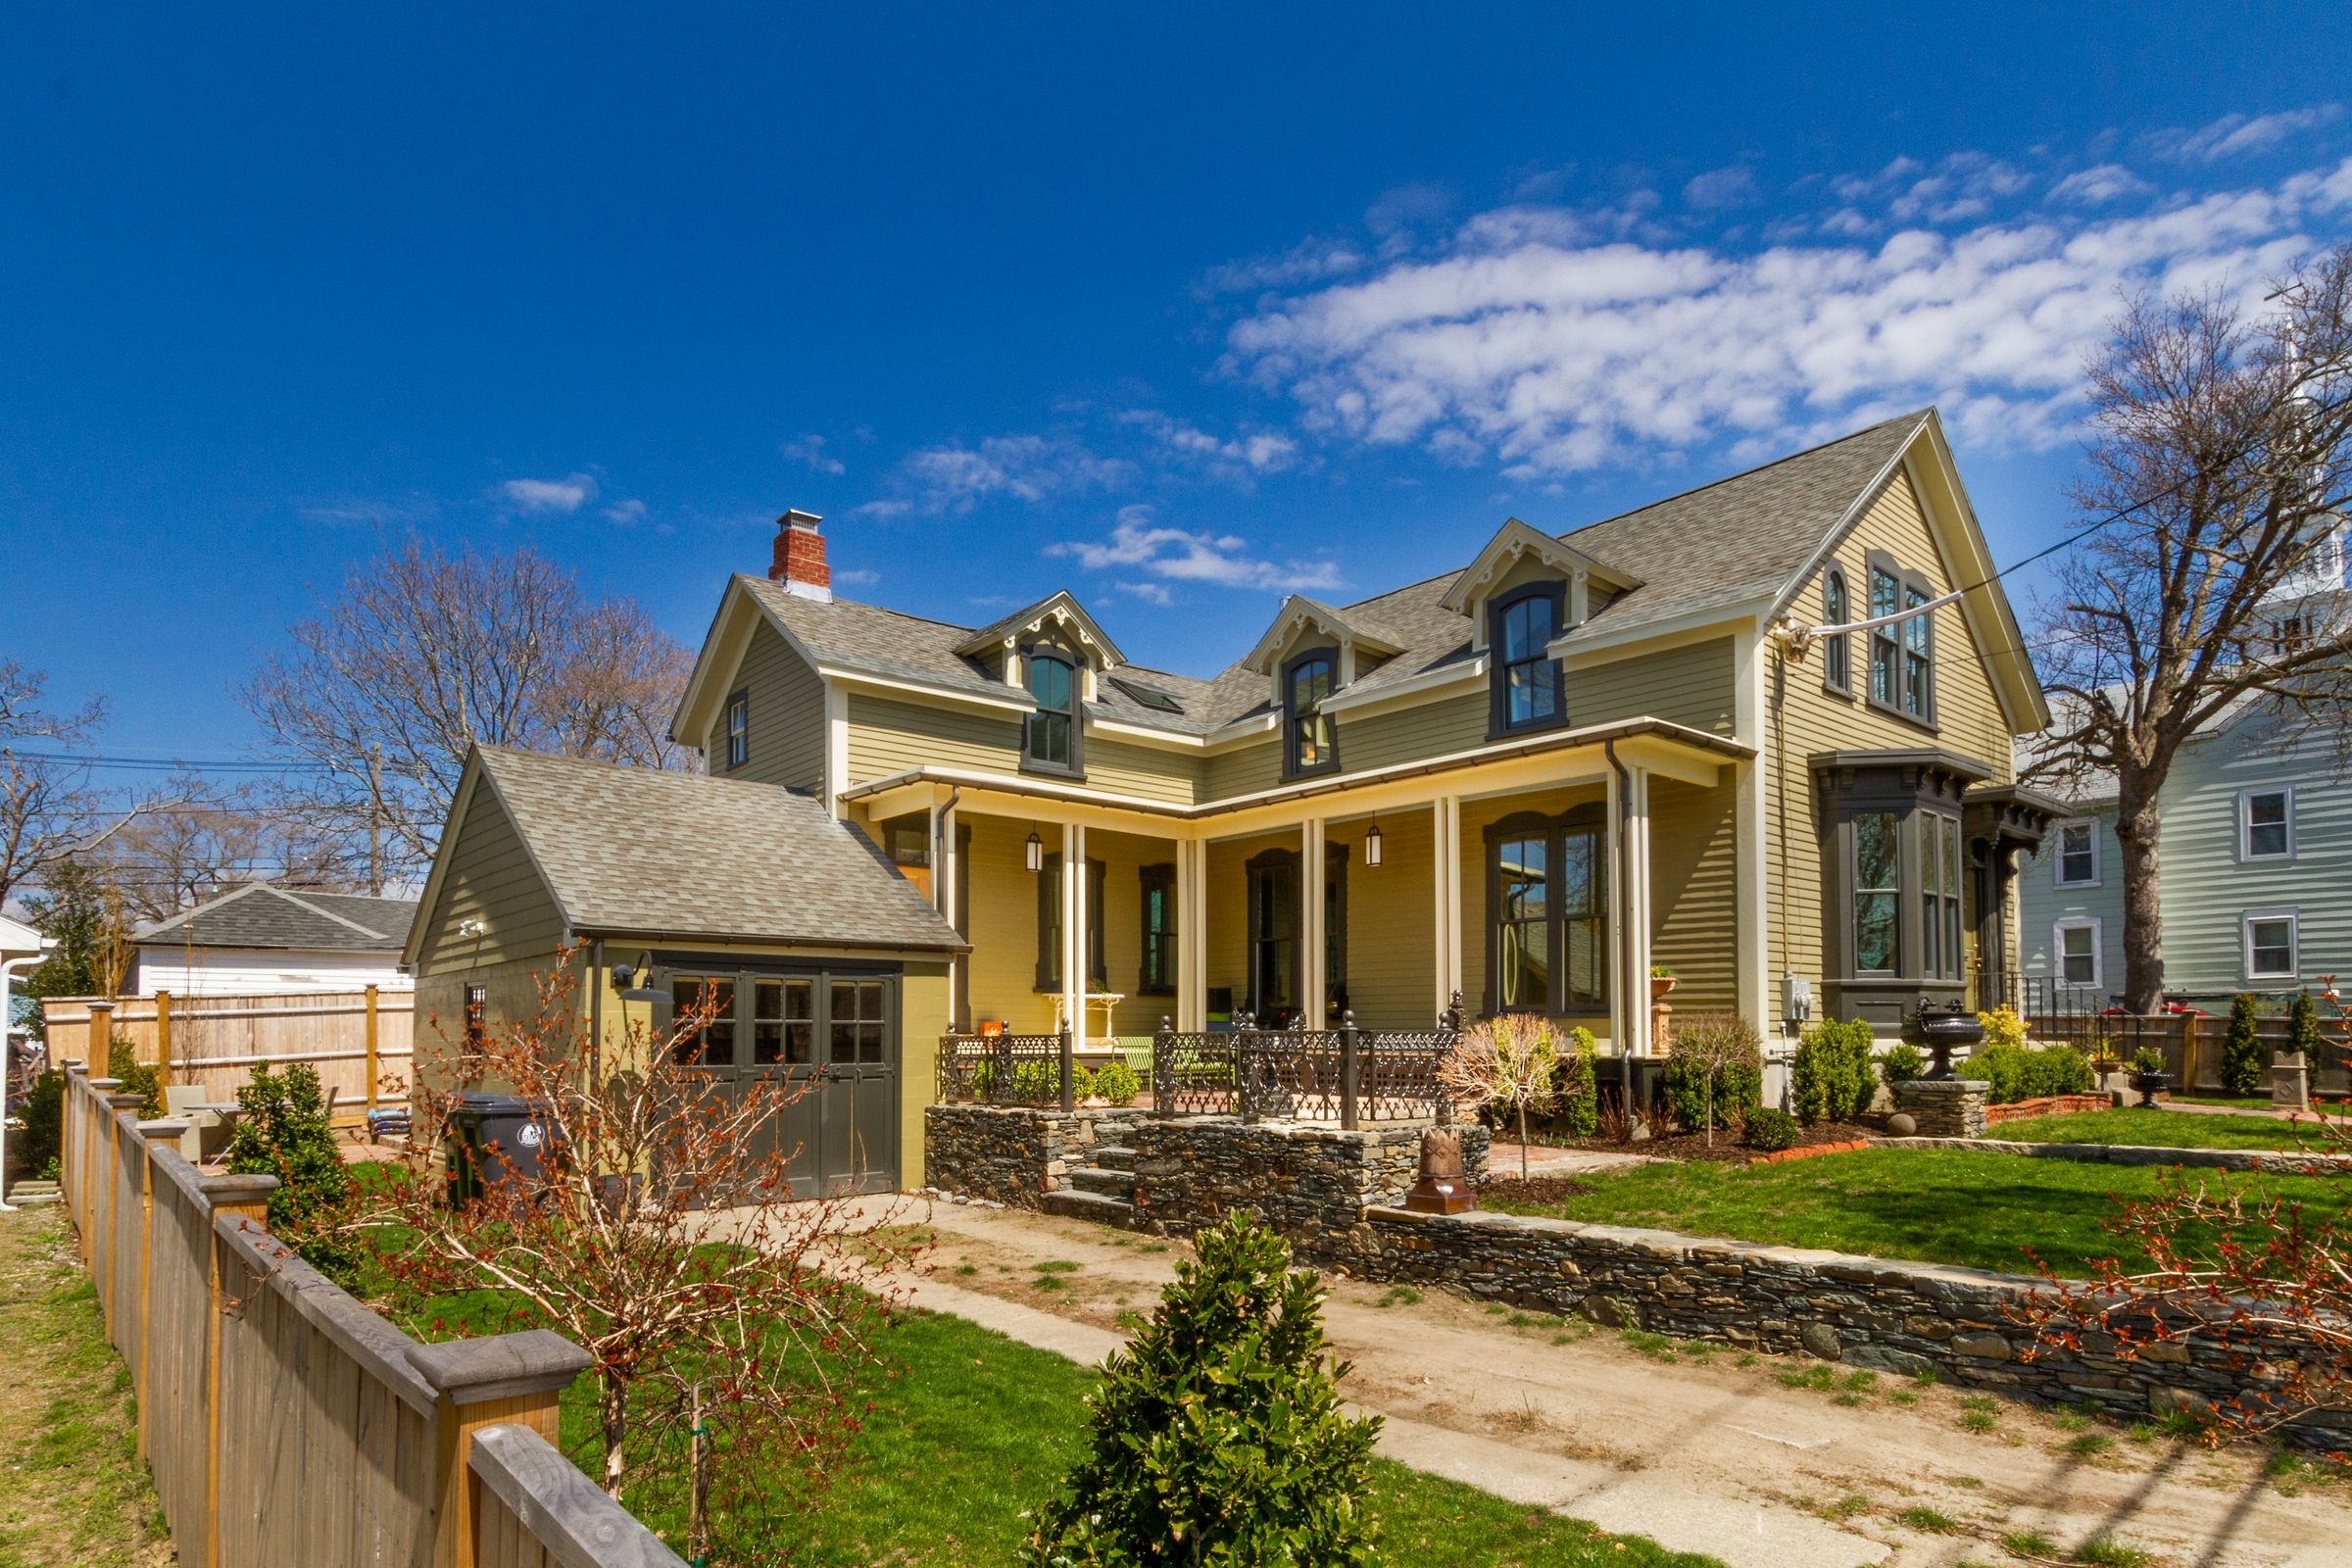 House Lust: This Yellow Victorian in Warren Has All the Right Updates